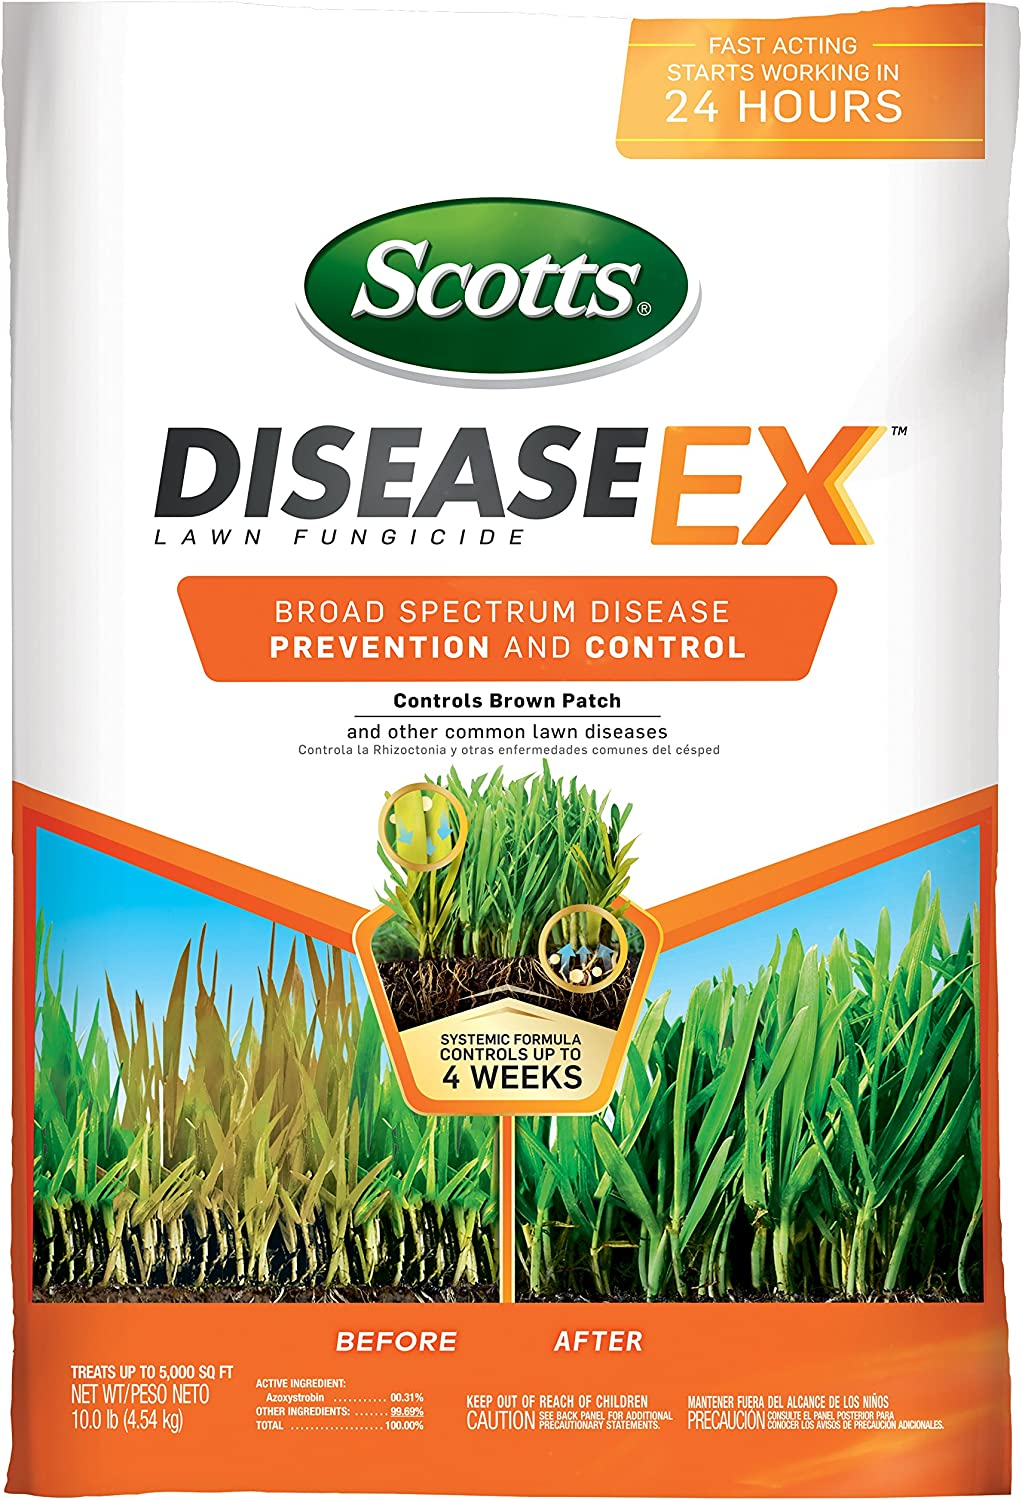 Amazon Com Scotts Diseaseex Lawn Fungicide Lawn Fungus Control Treatment Lawn Disease Control For Brown Patch Powdery Mildew More Controls Up To 4 Weeks Fast Acting Treats Up To